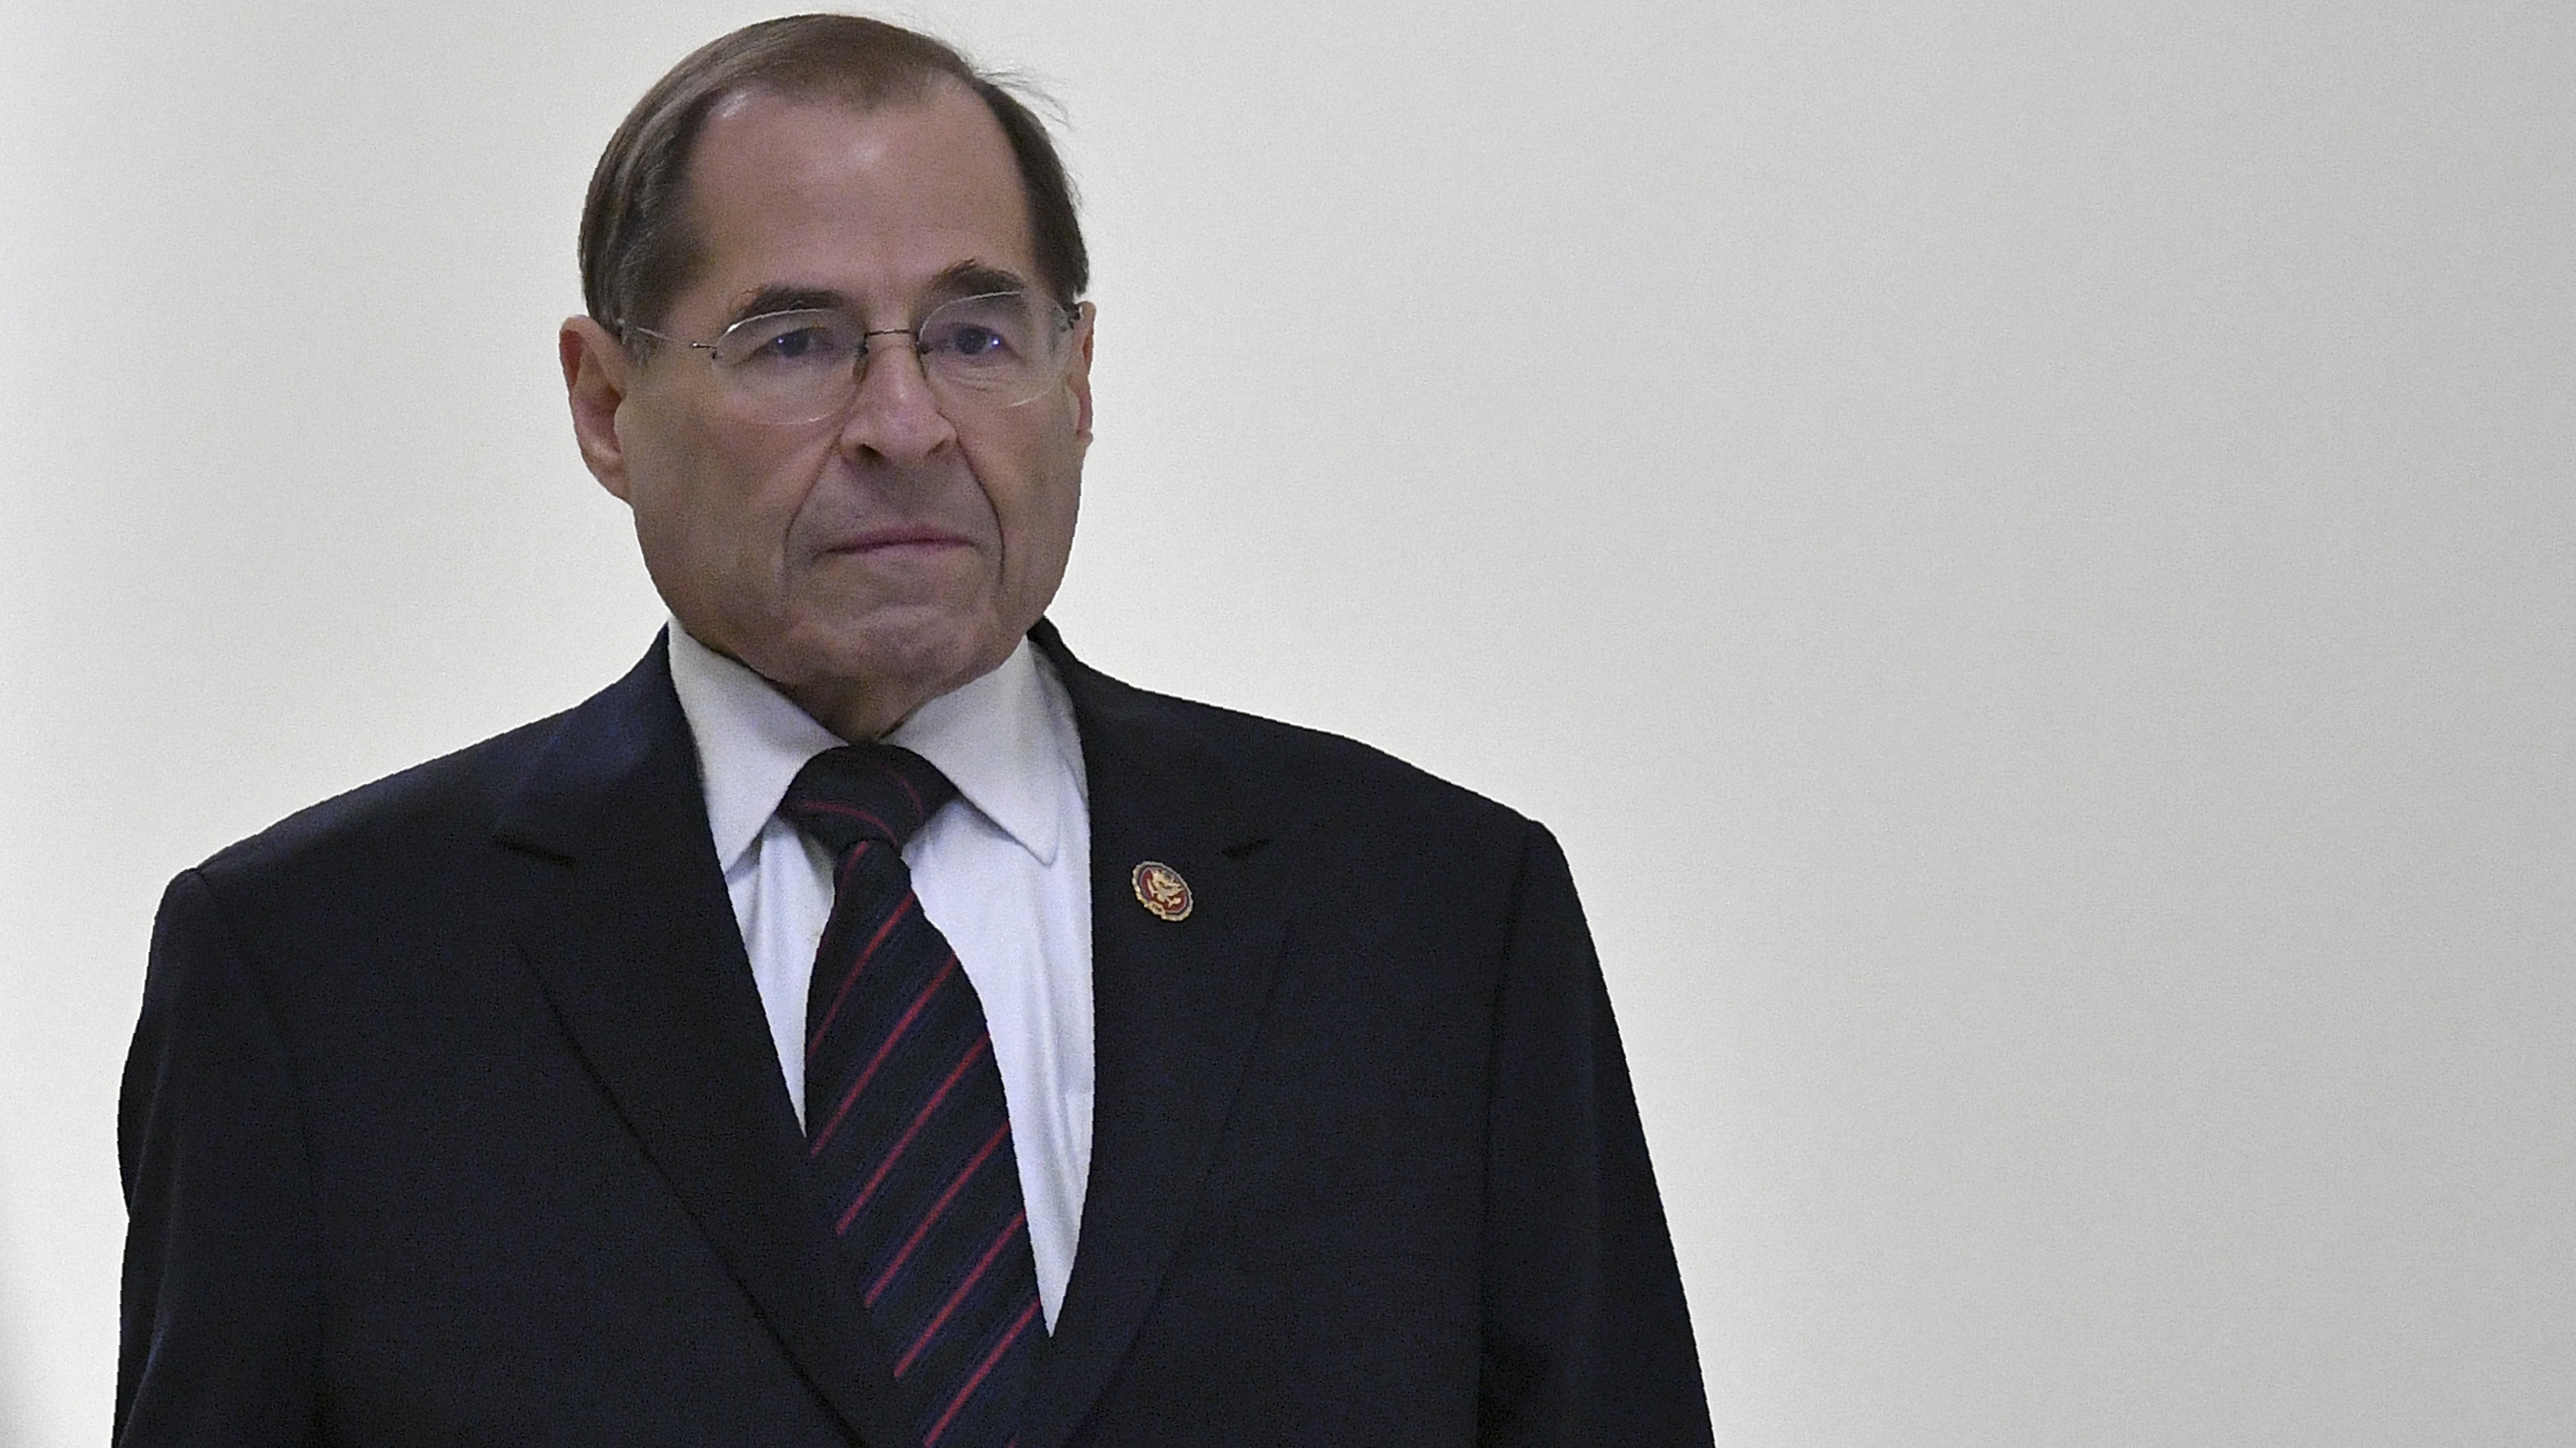 House Judiciary Chairman Jerry Nadler Subpoenas Full Mueller Report